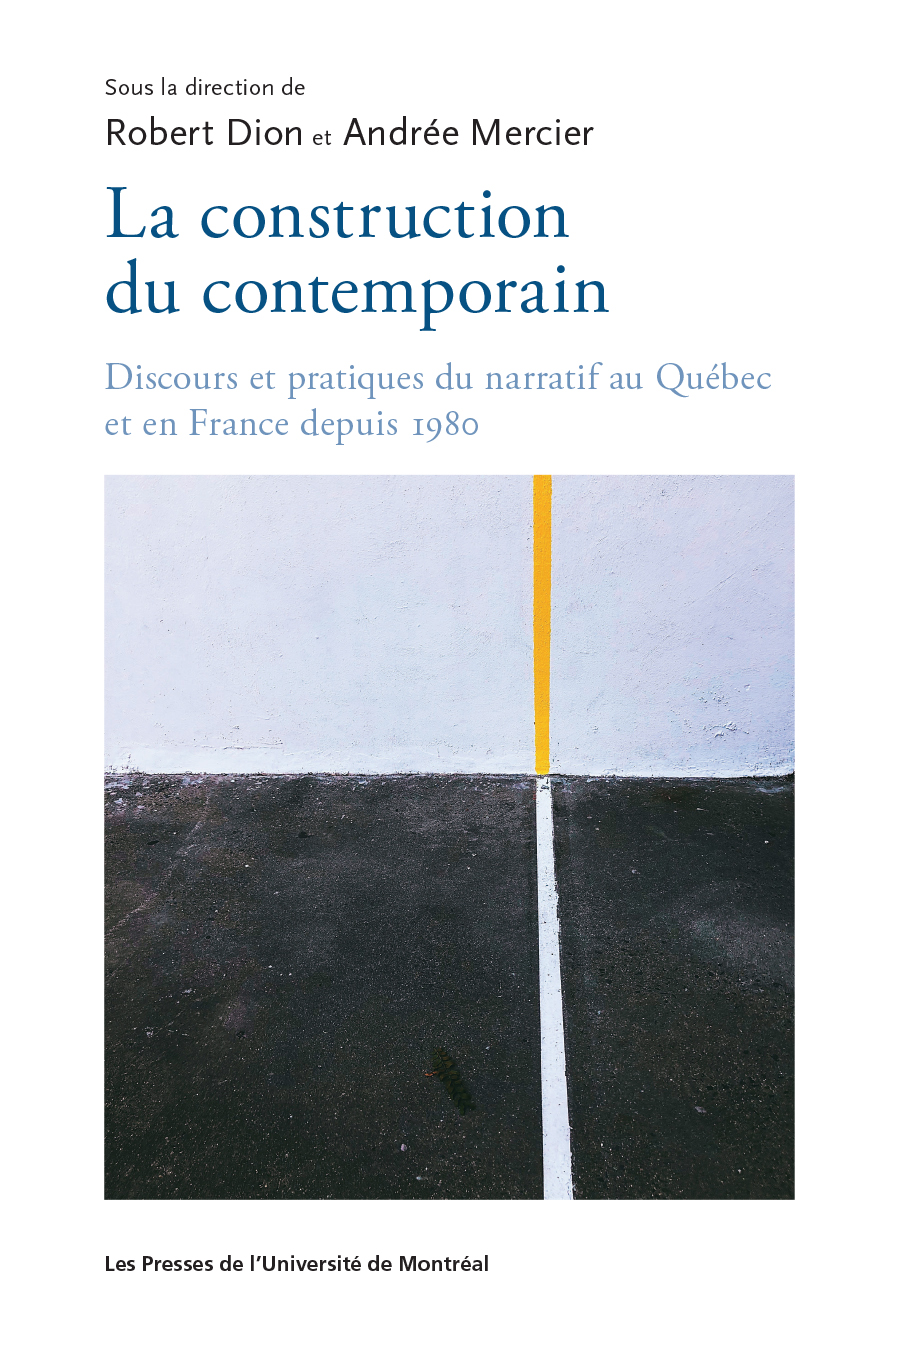 La construction du contemporain